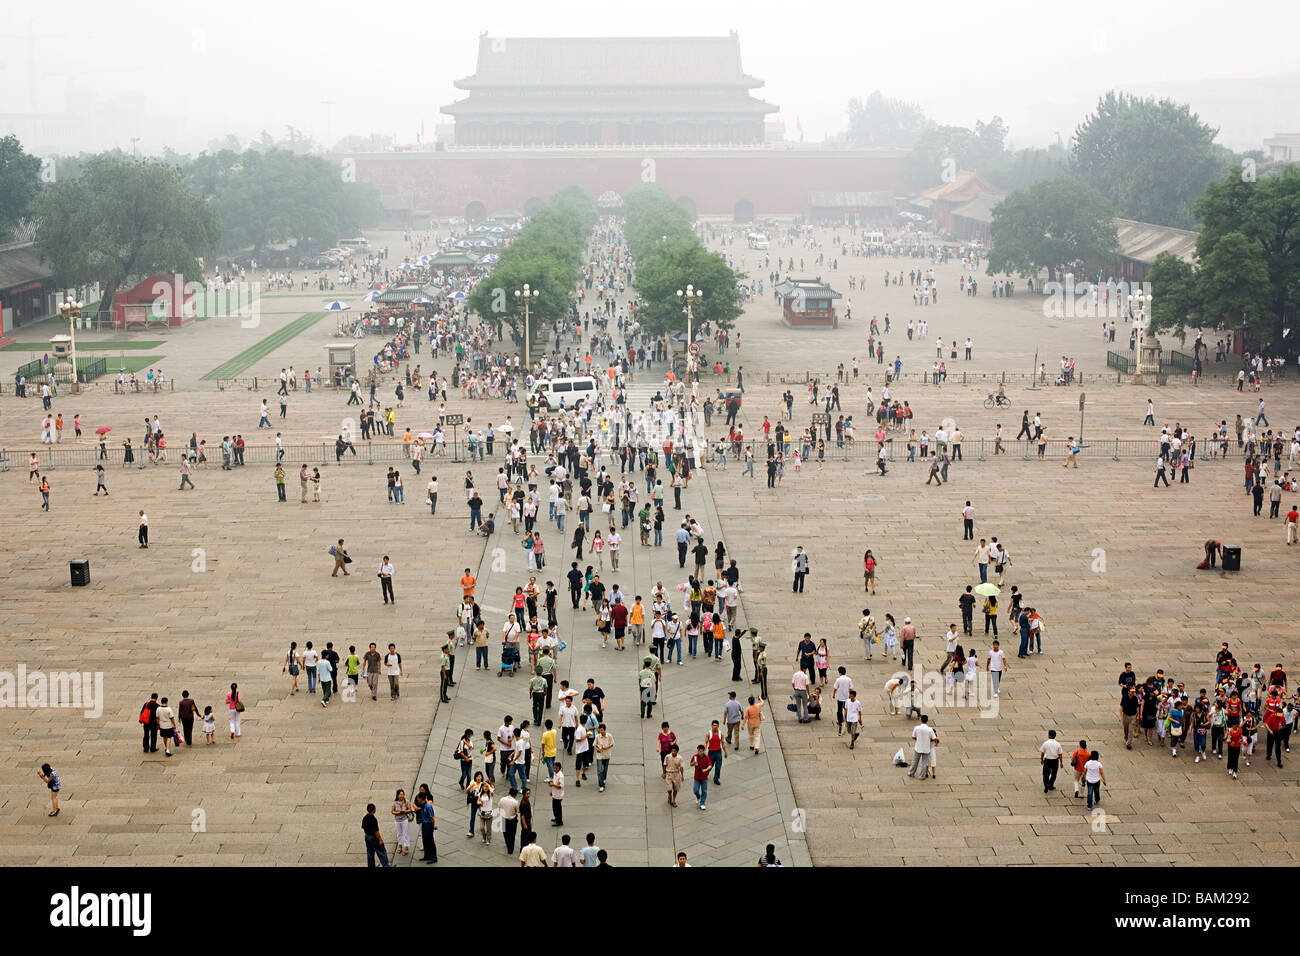 People in tiananmen square - Stock Image